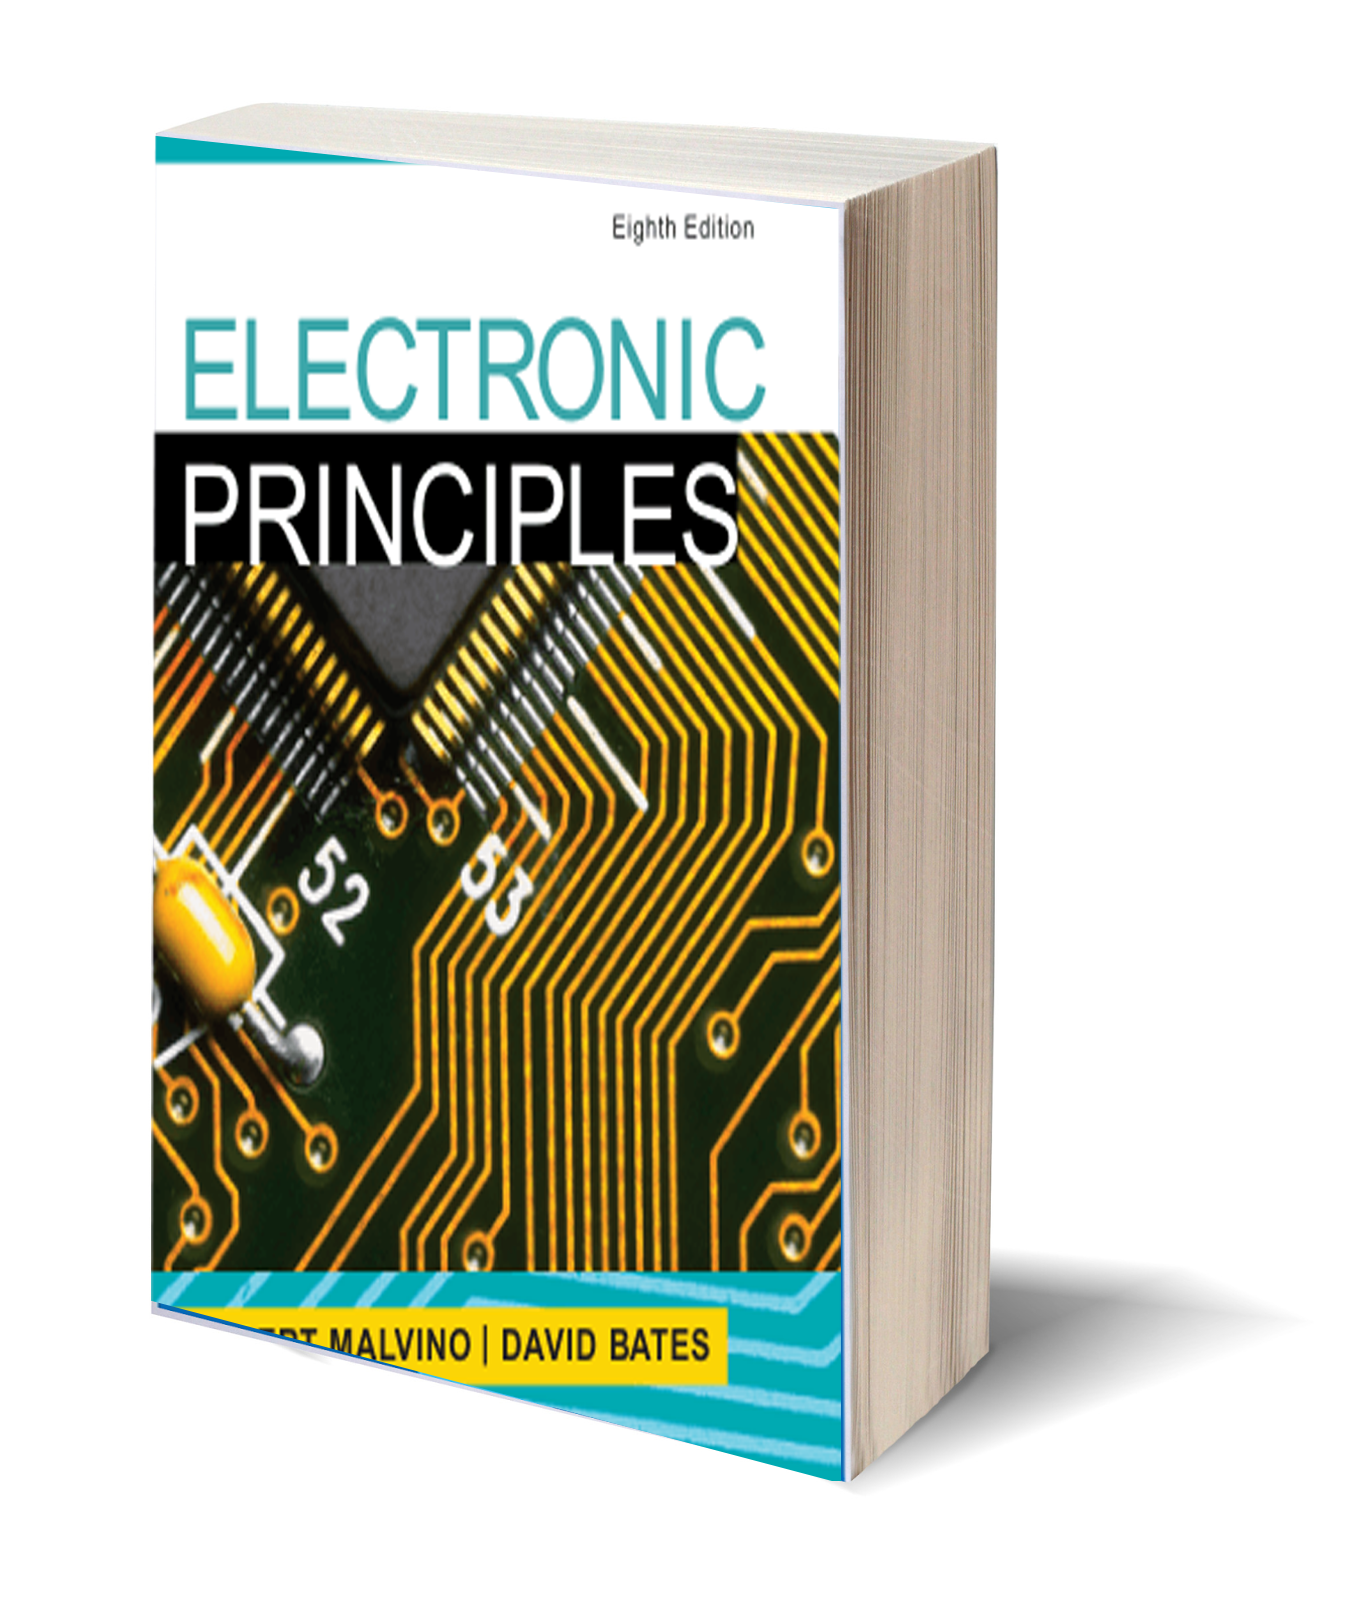 17th Edition Wiring Regulations Book Pdf Juillet 2018 Livrebook Electronic Principles